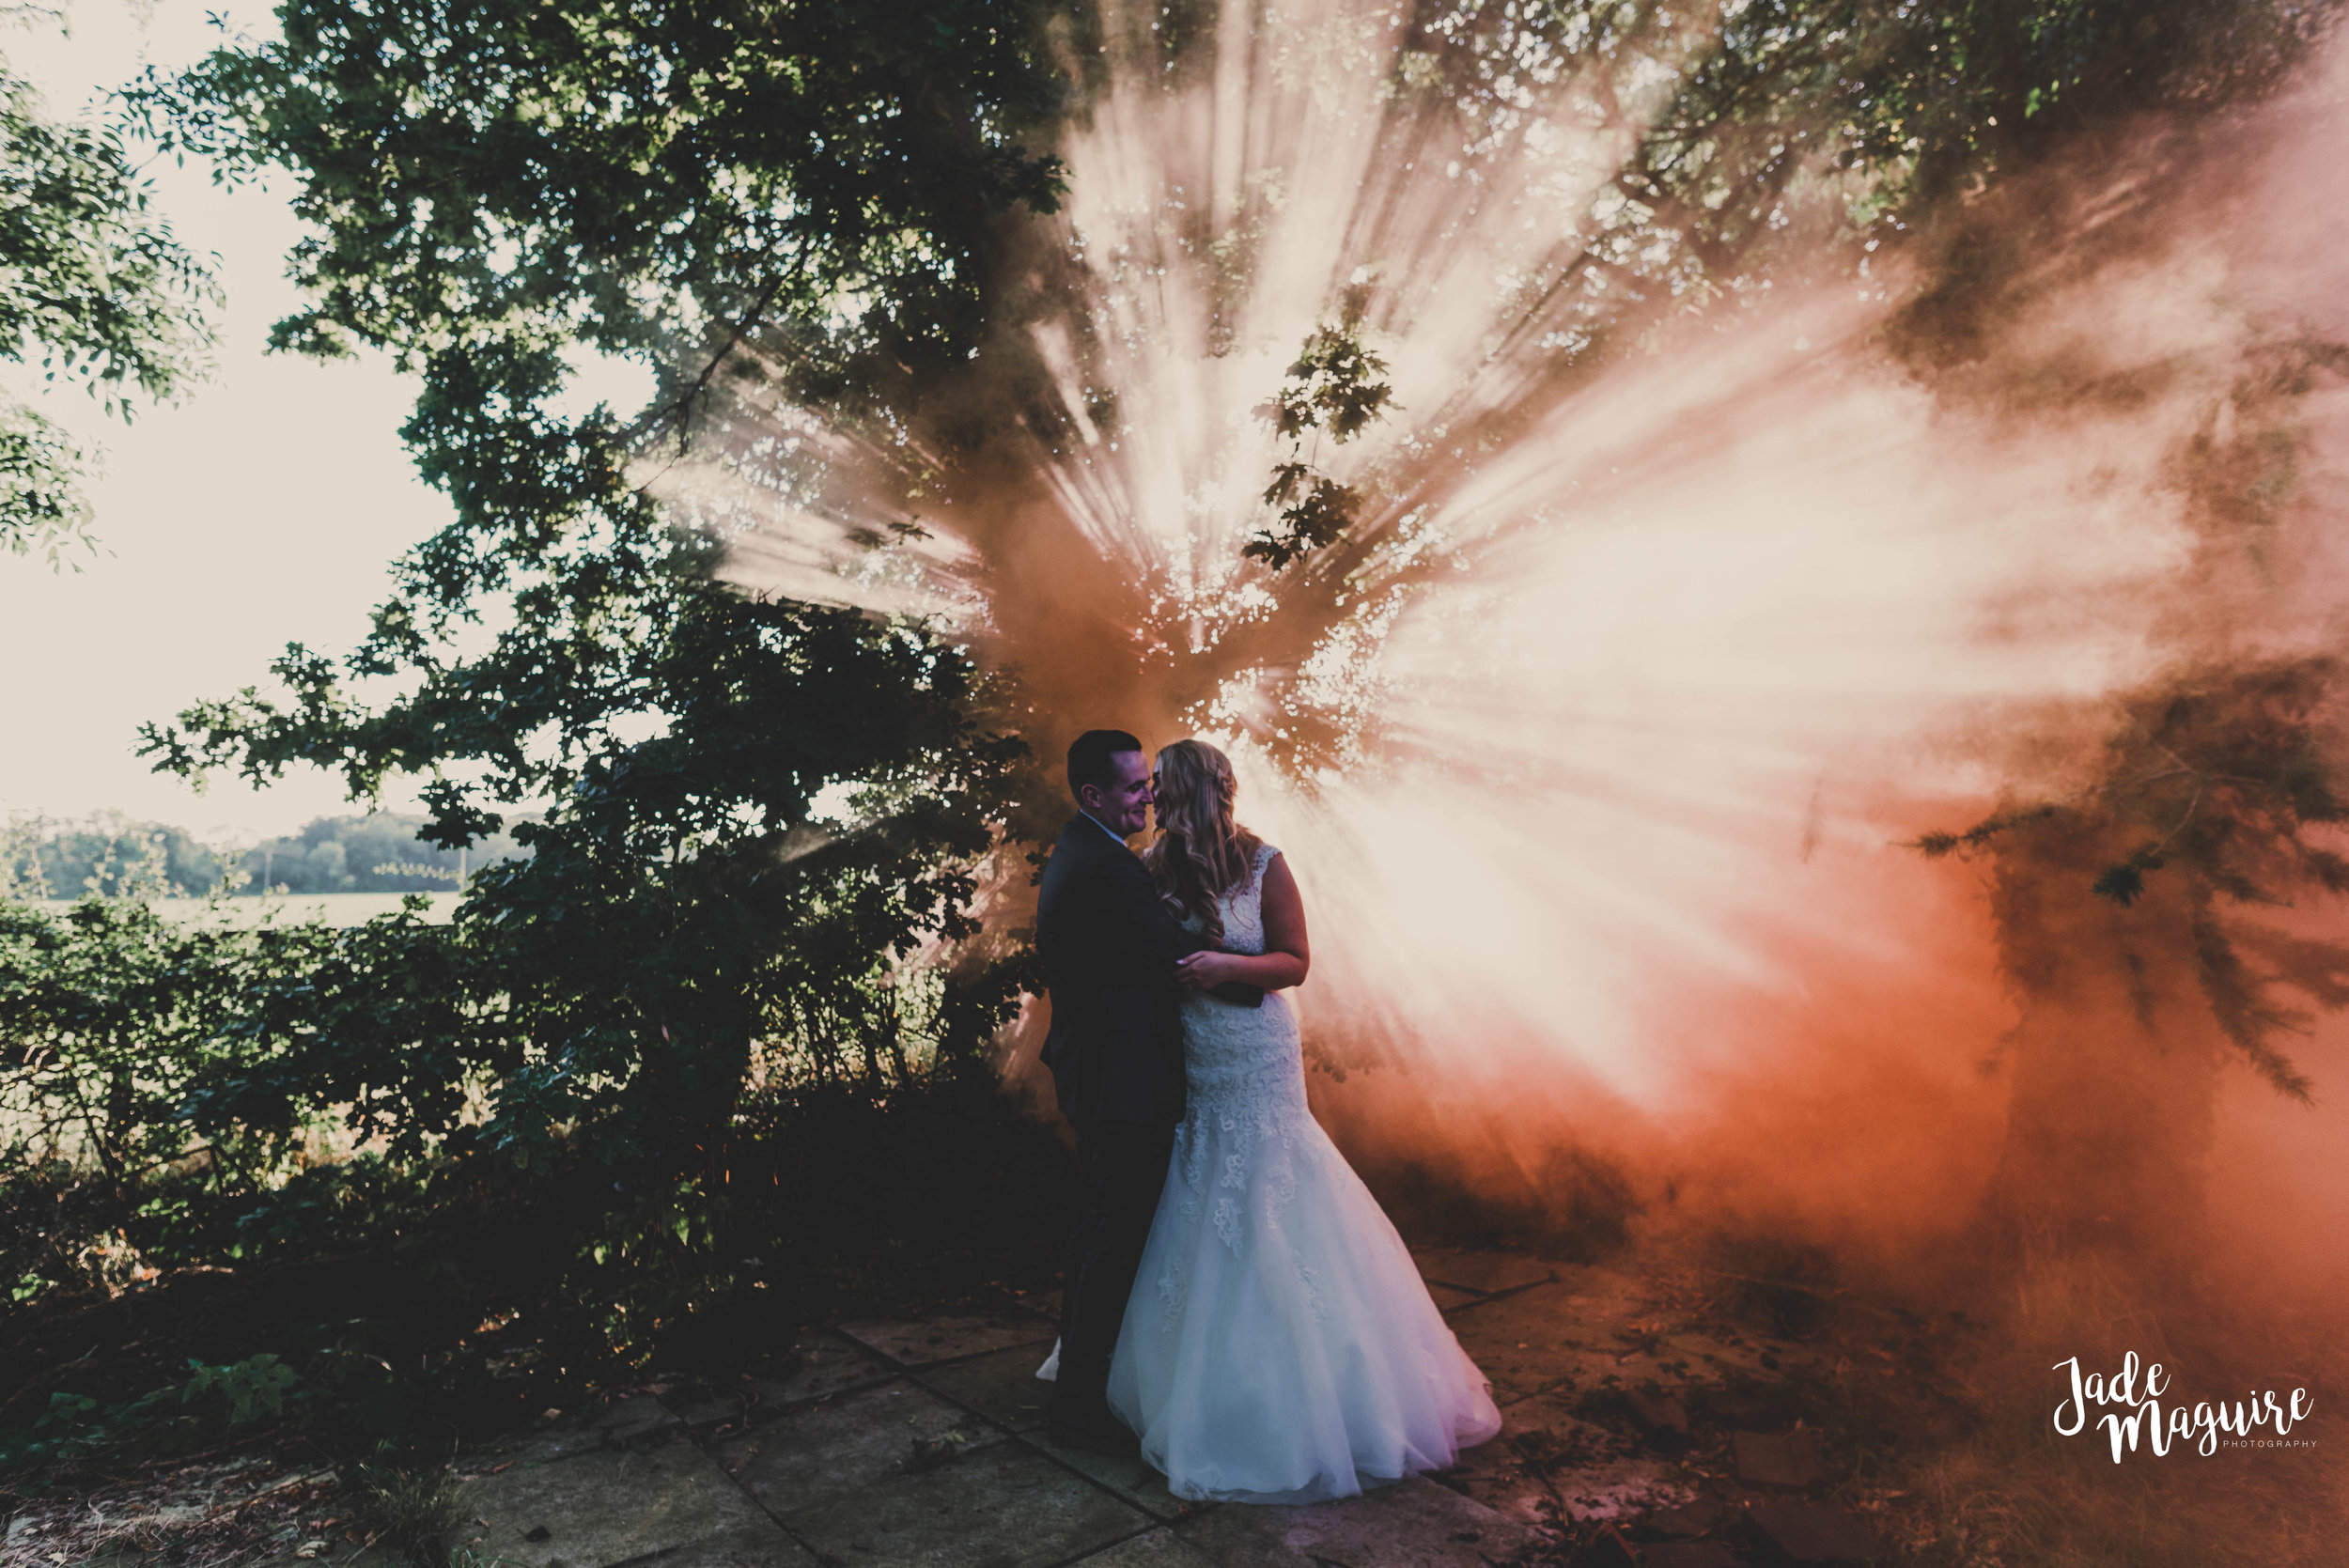 dreamy-alternative-wedding-photography-yorkshire-wedding-photographer (1).jpg